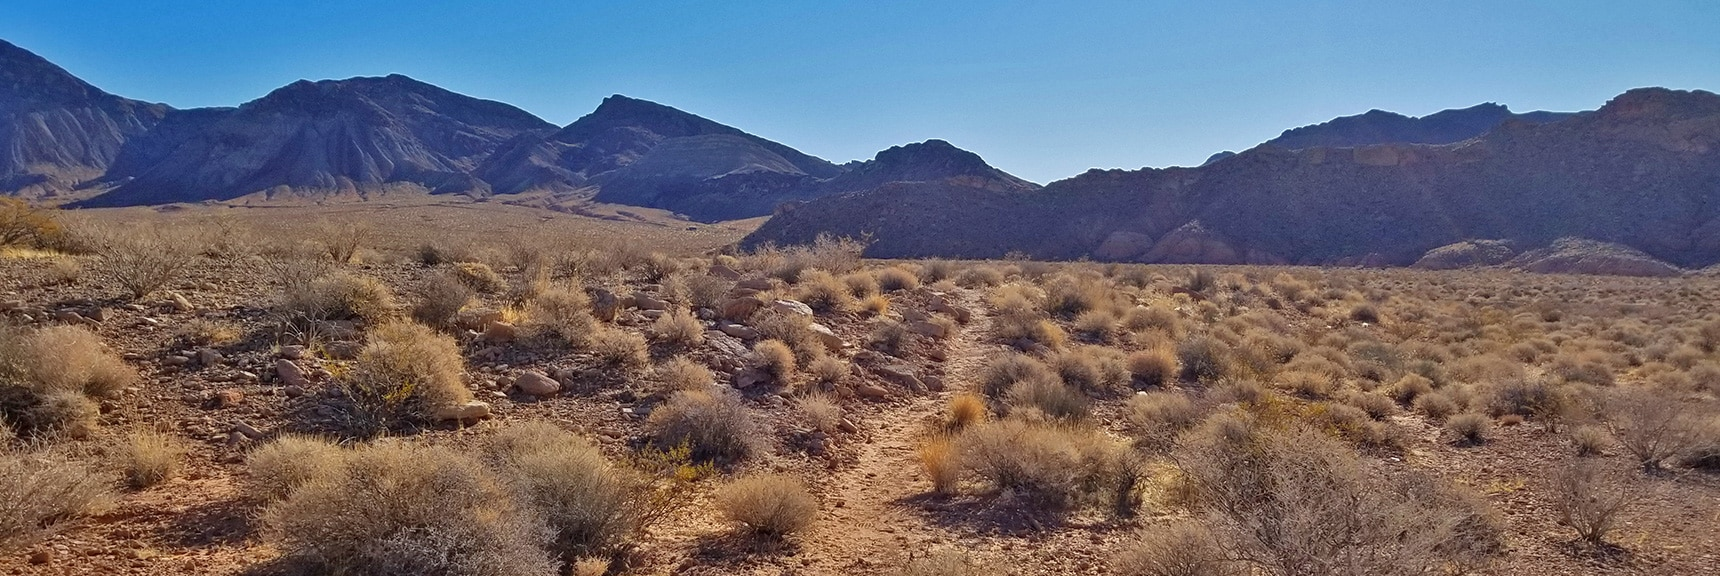 Bowl of Fire Trail in Excellent Condition, Looking Back Toward Trailhead | Bowl of Fire, Lake Mead National Recreation Area, Nevada